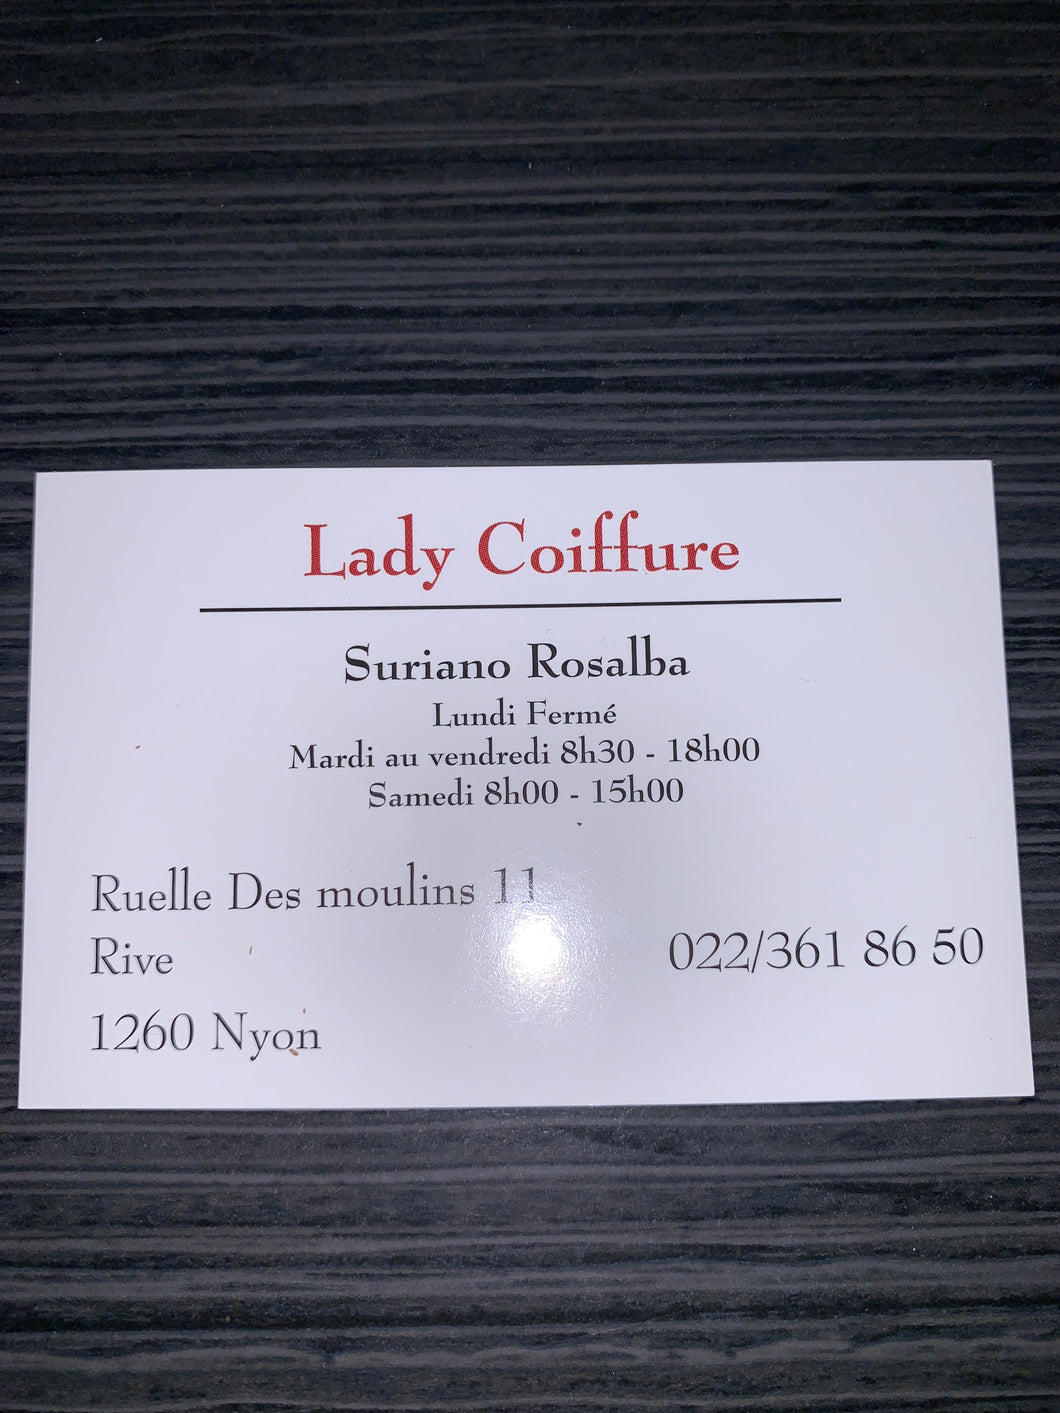 Lady Coiffure